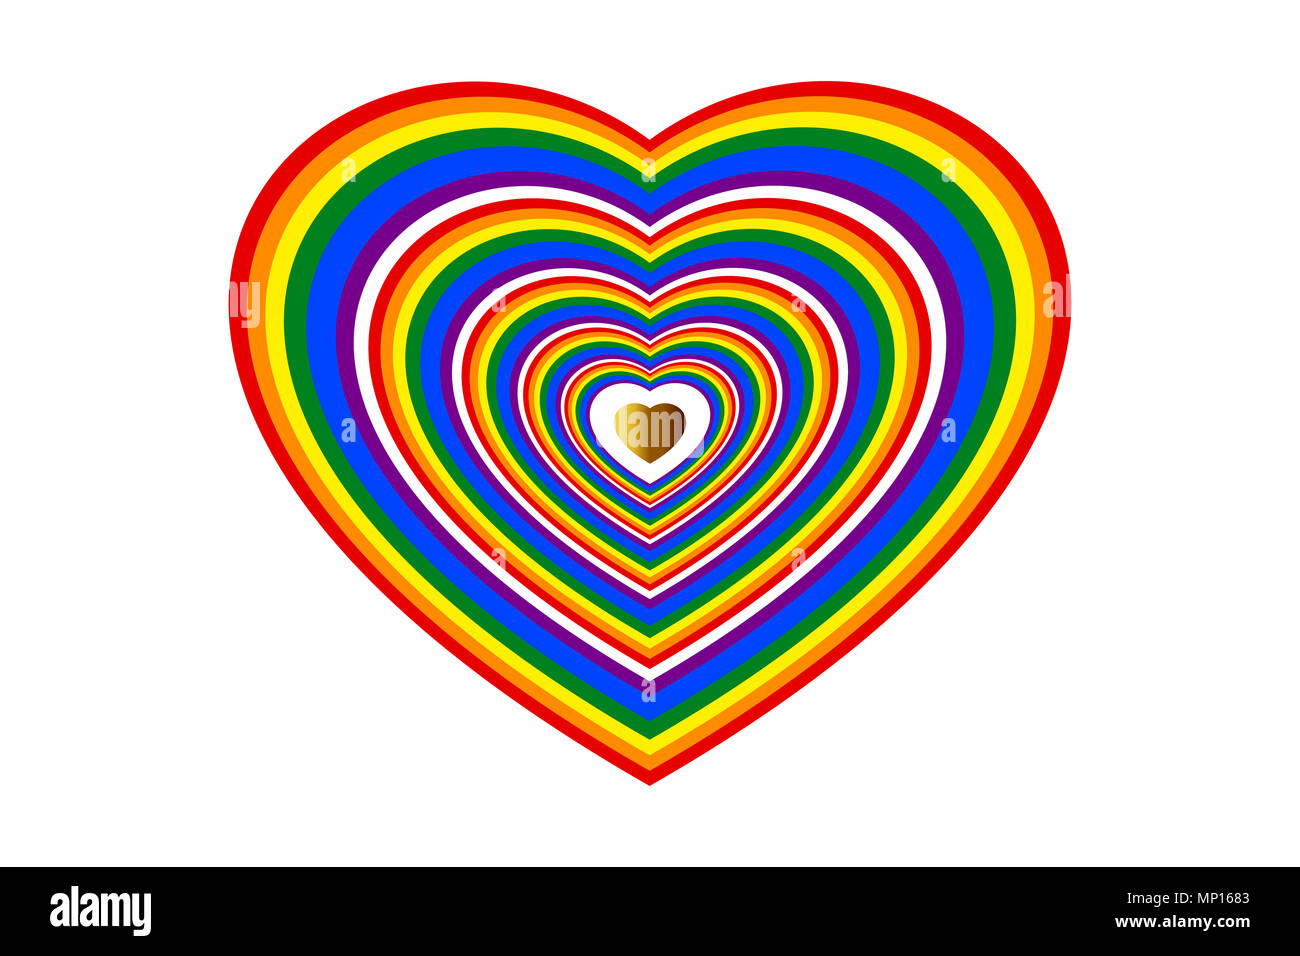 Concepts of love, wedding, valentines, LGBTQ. Rainbow colored heart shape and center gold heart. - Stock Image